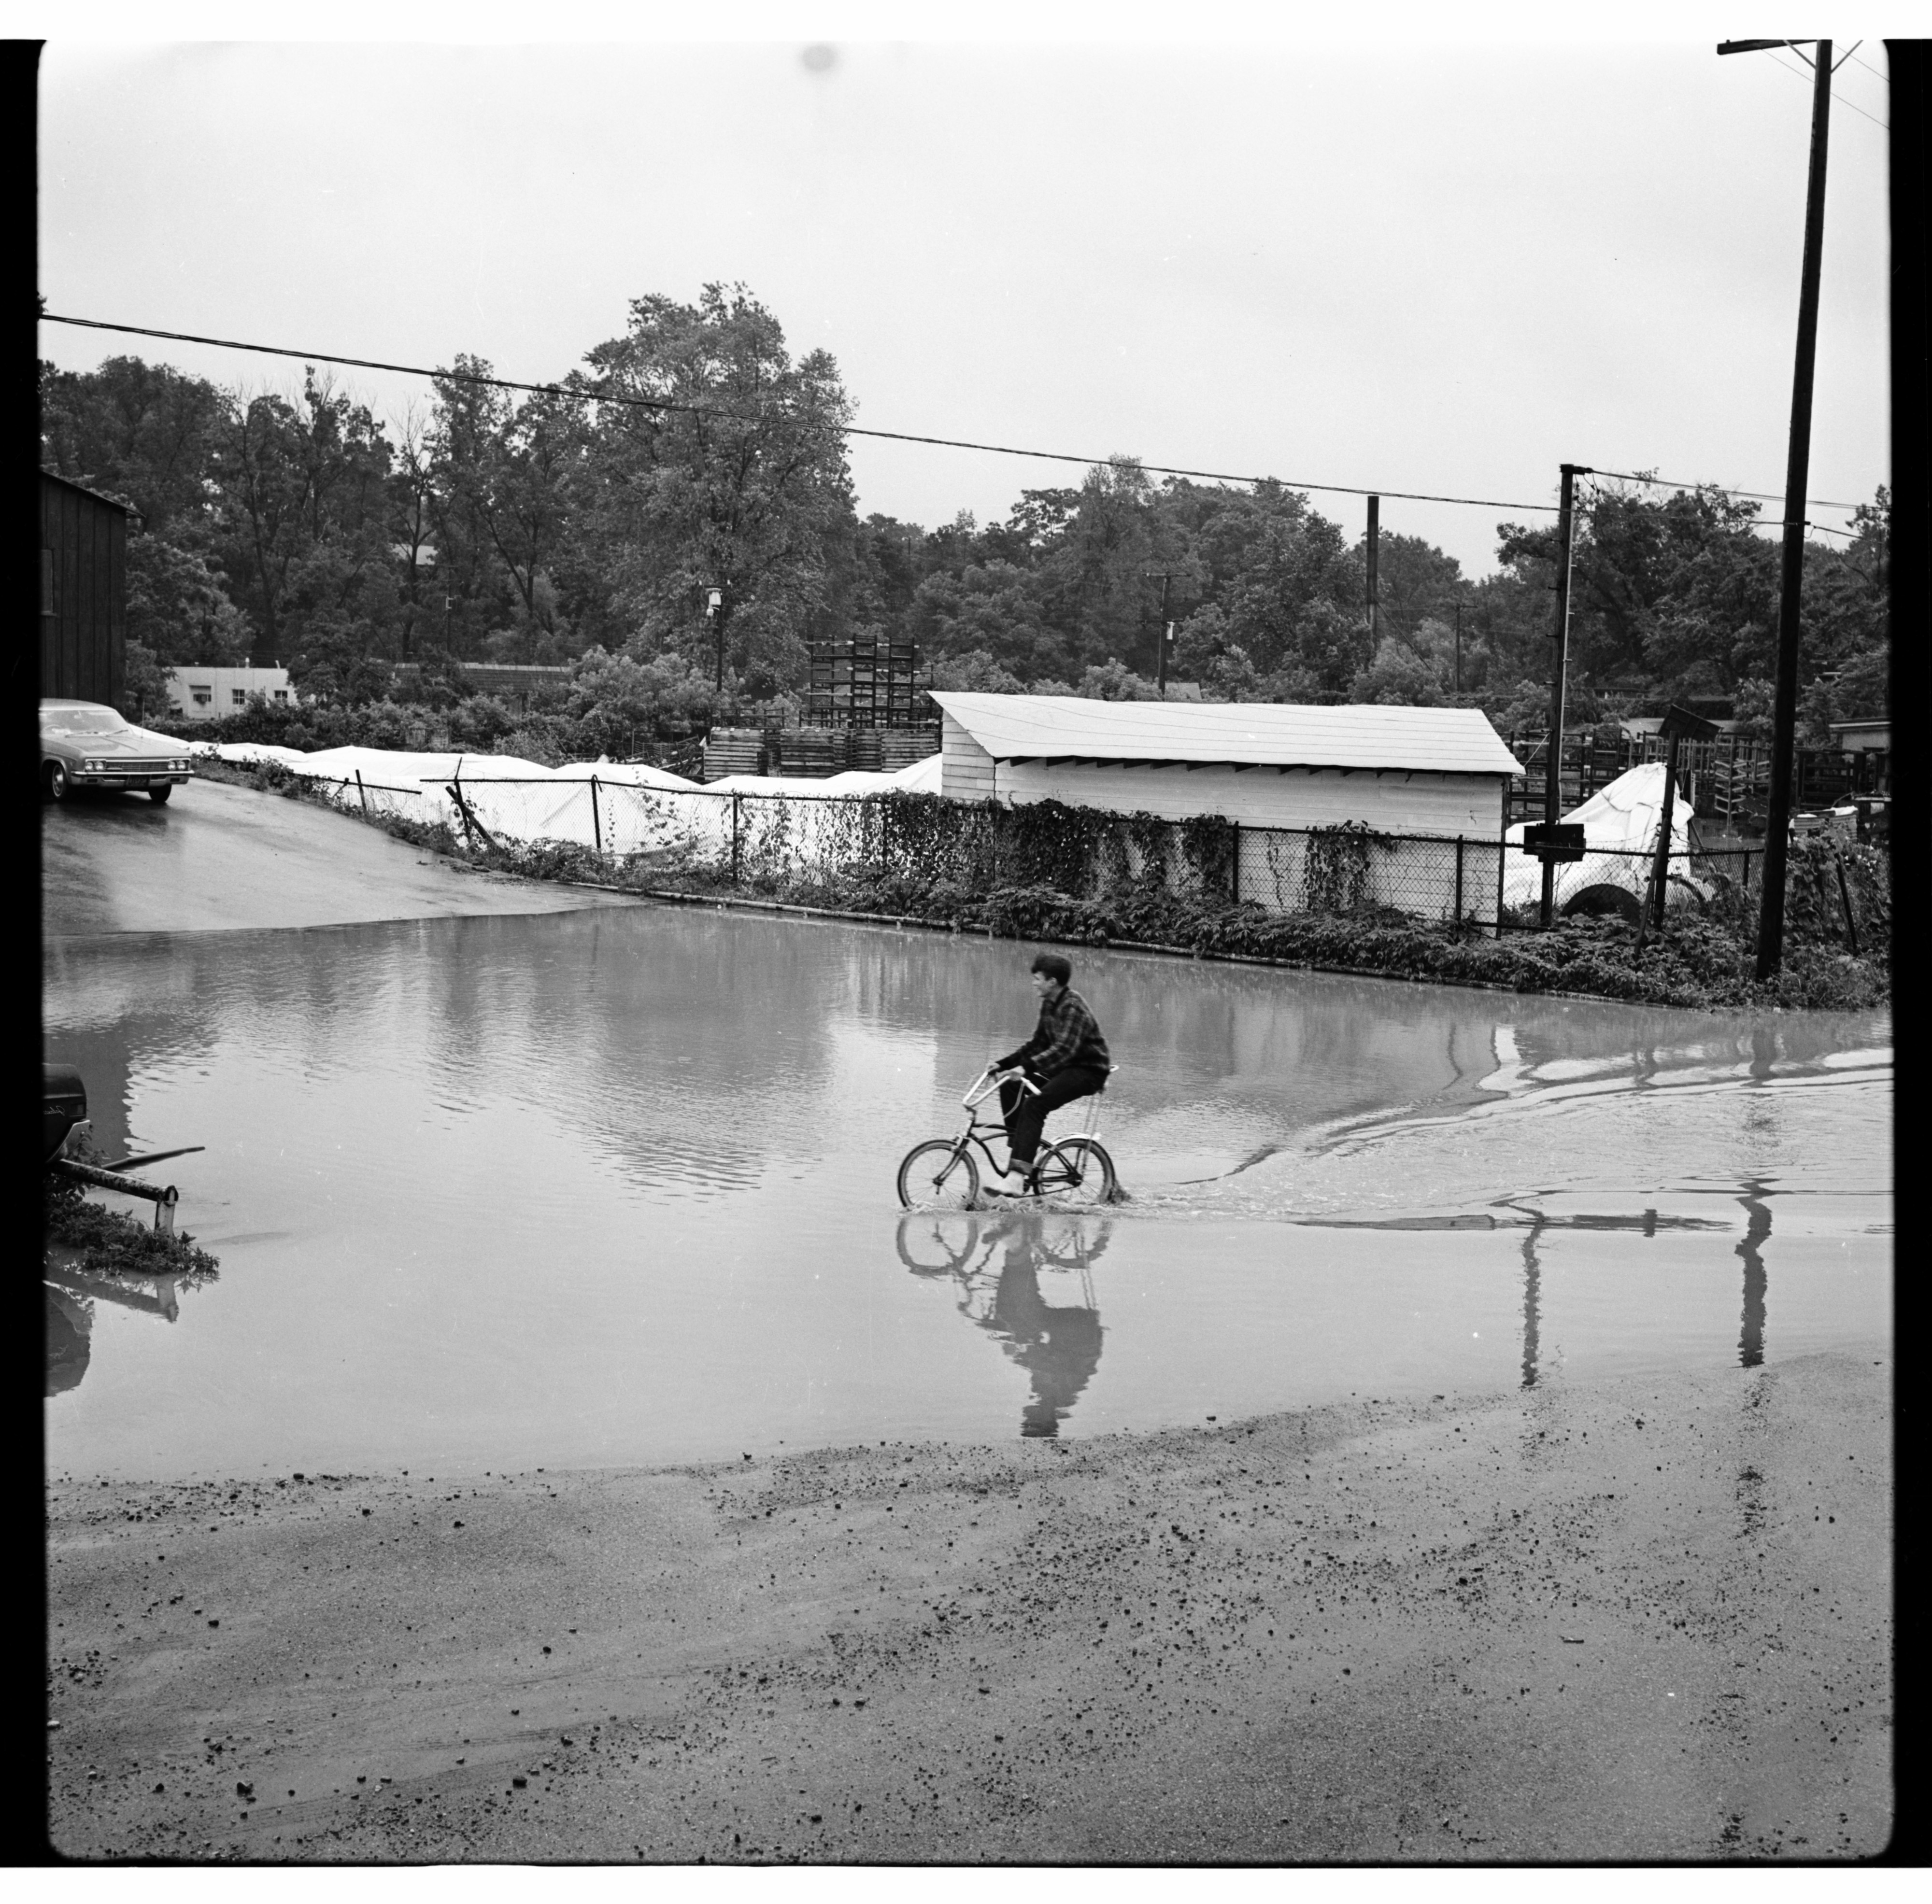 Boy Riding Bike through Floodwaters, June 1968 Flood image